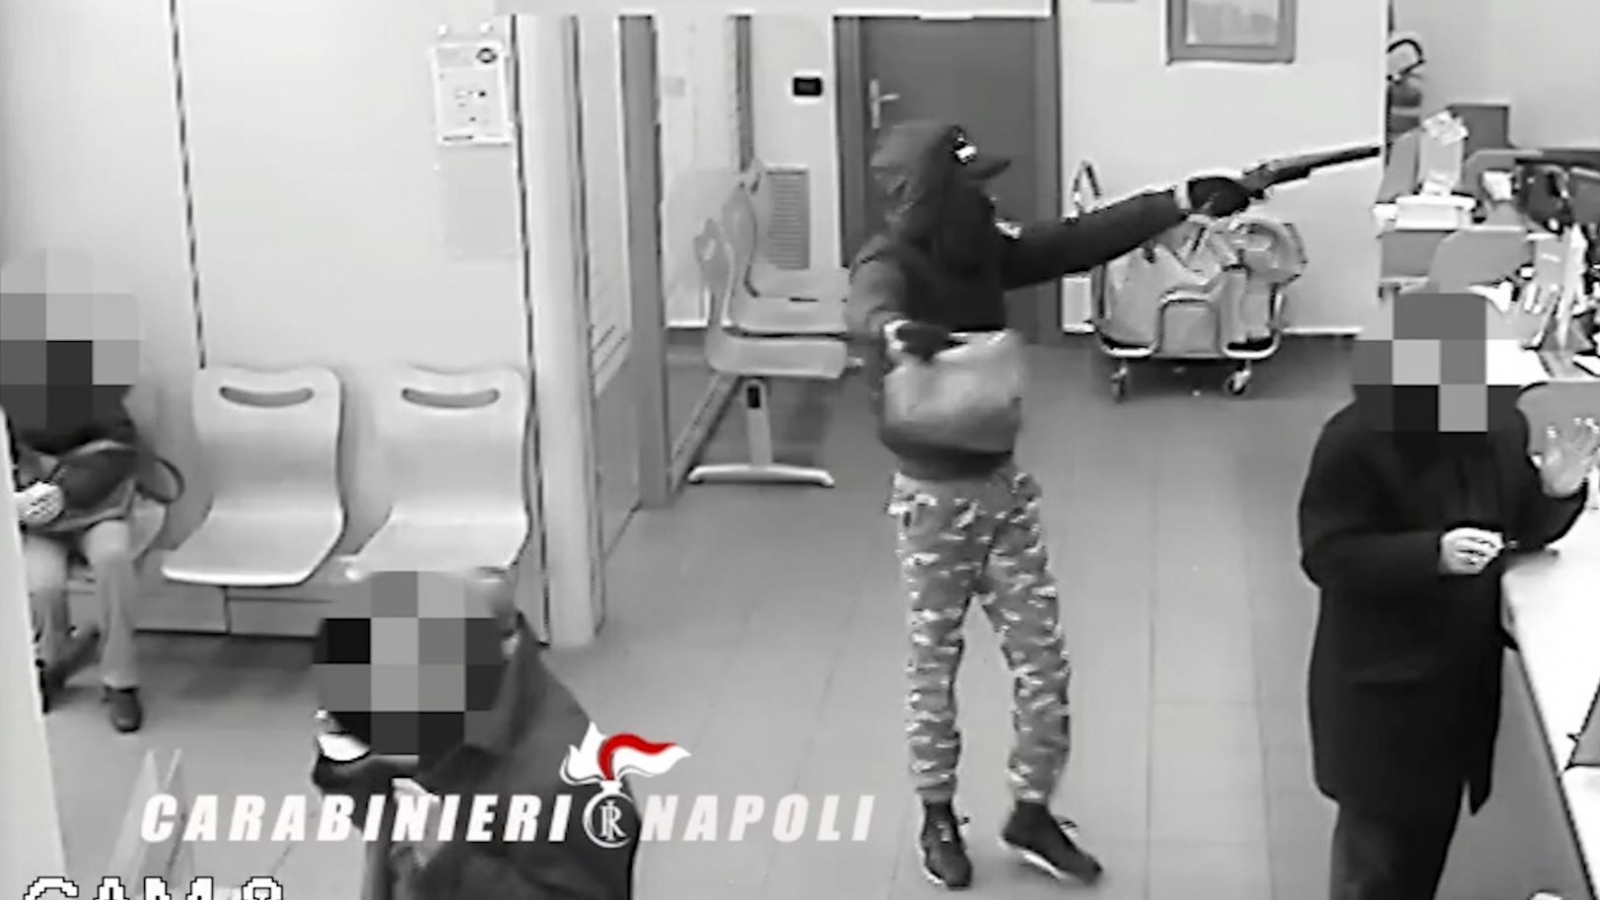 Italian mother caught on camera 'using' 10-year-old son in Naples armed robbery